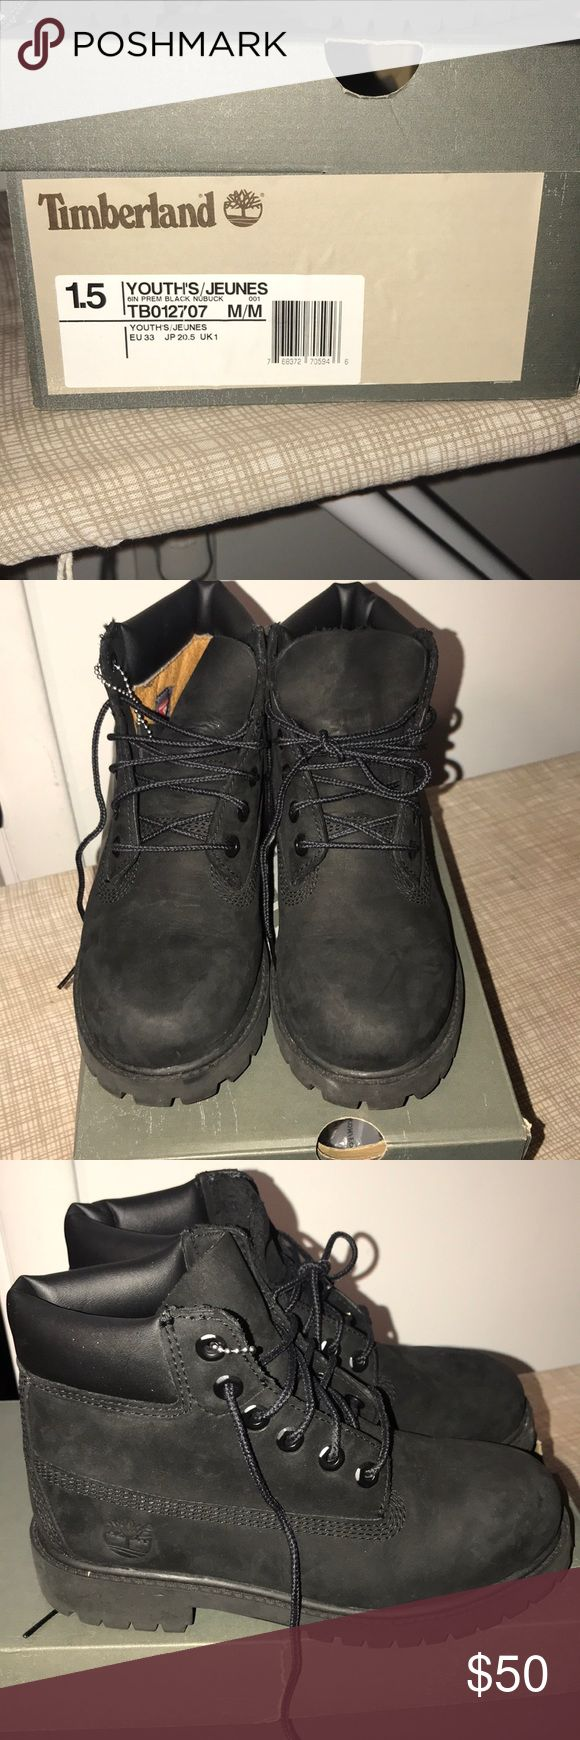 Kids Timberland Boots All Black Timberland Boots for kids only worn twice. Fairly new Timberland Shoes Boots